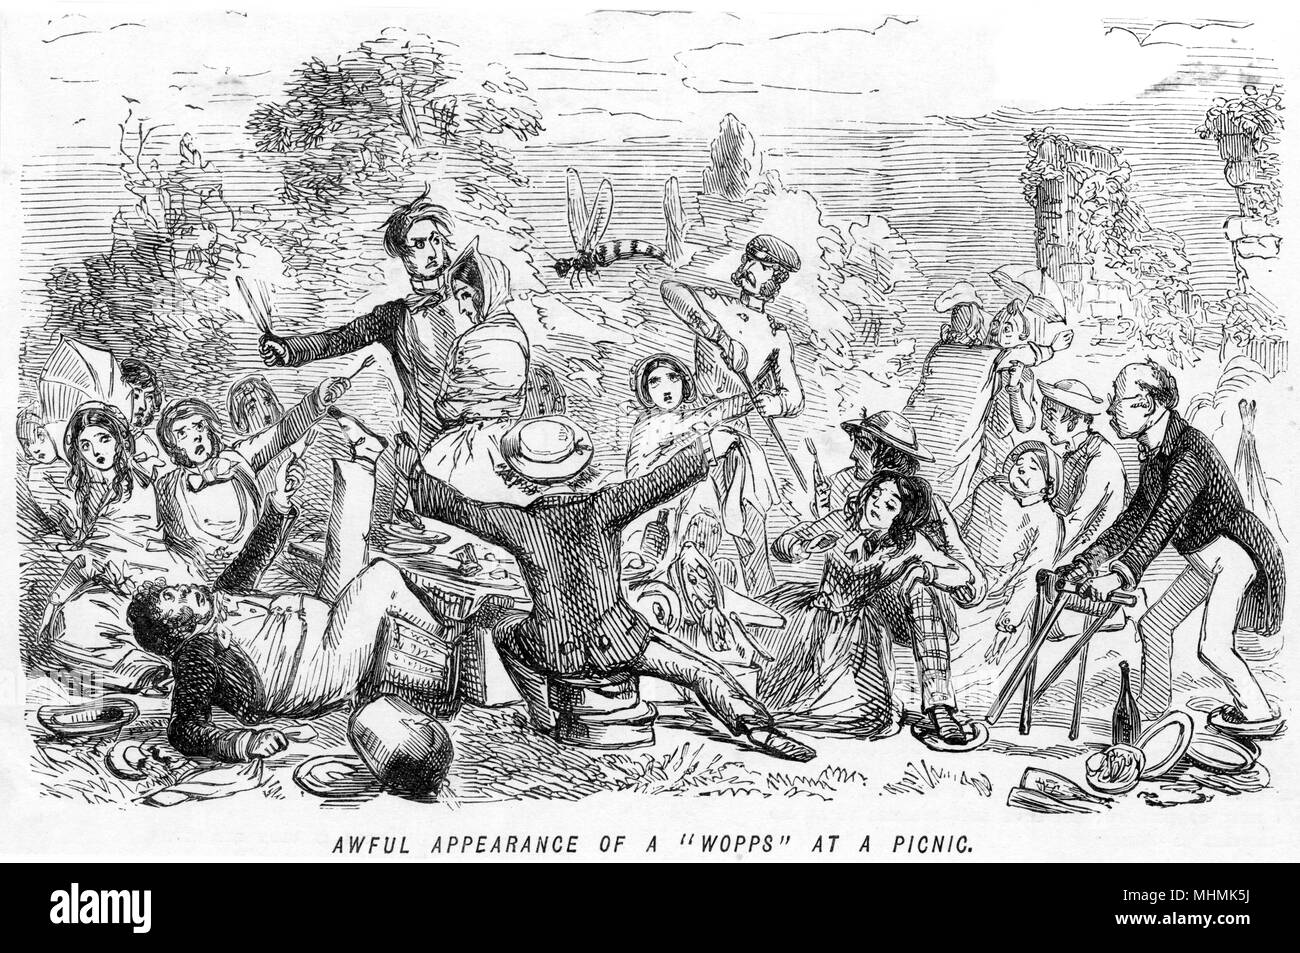 """'Awful appearance of a """"wopps"""" at a picnic': picnic guests are severely bothered when a rather large wasp takes an interest in their food, one of the hazards of outdoor eating     Date: circa 1840 - Stock Image"""